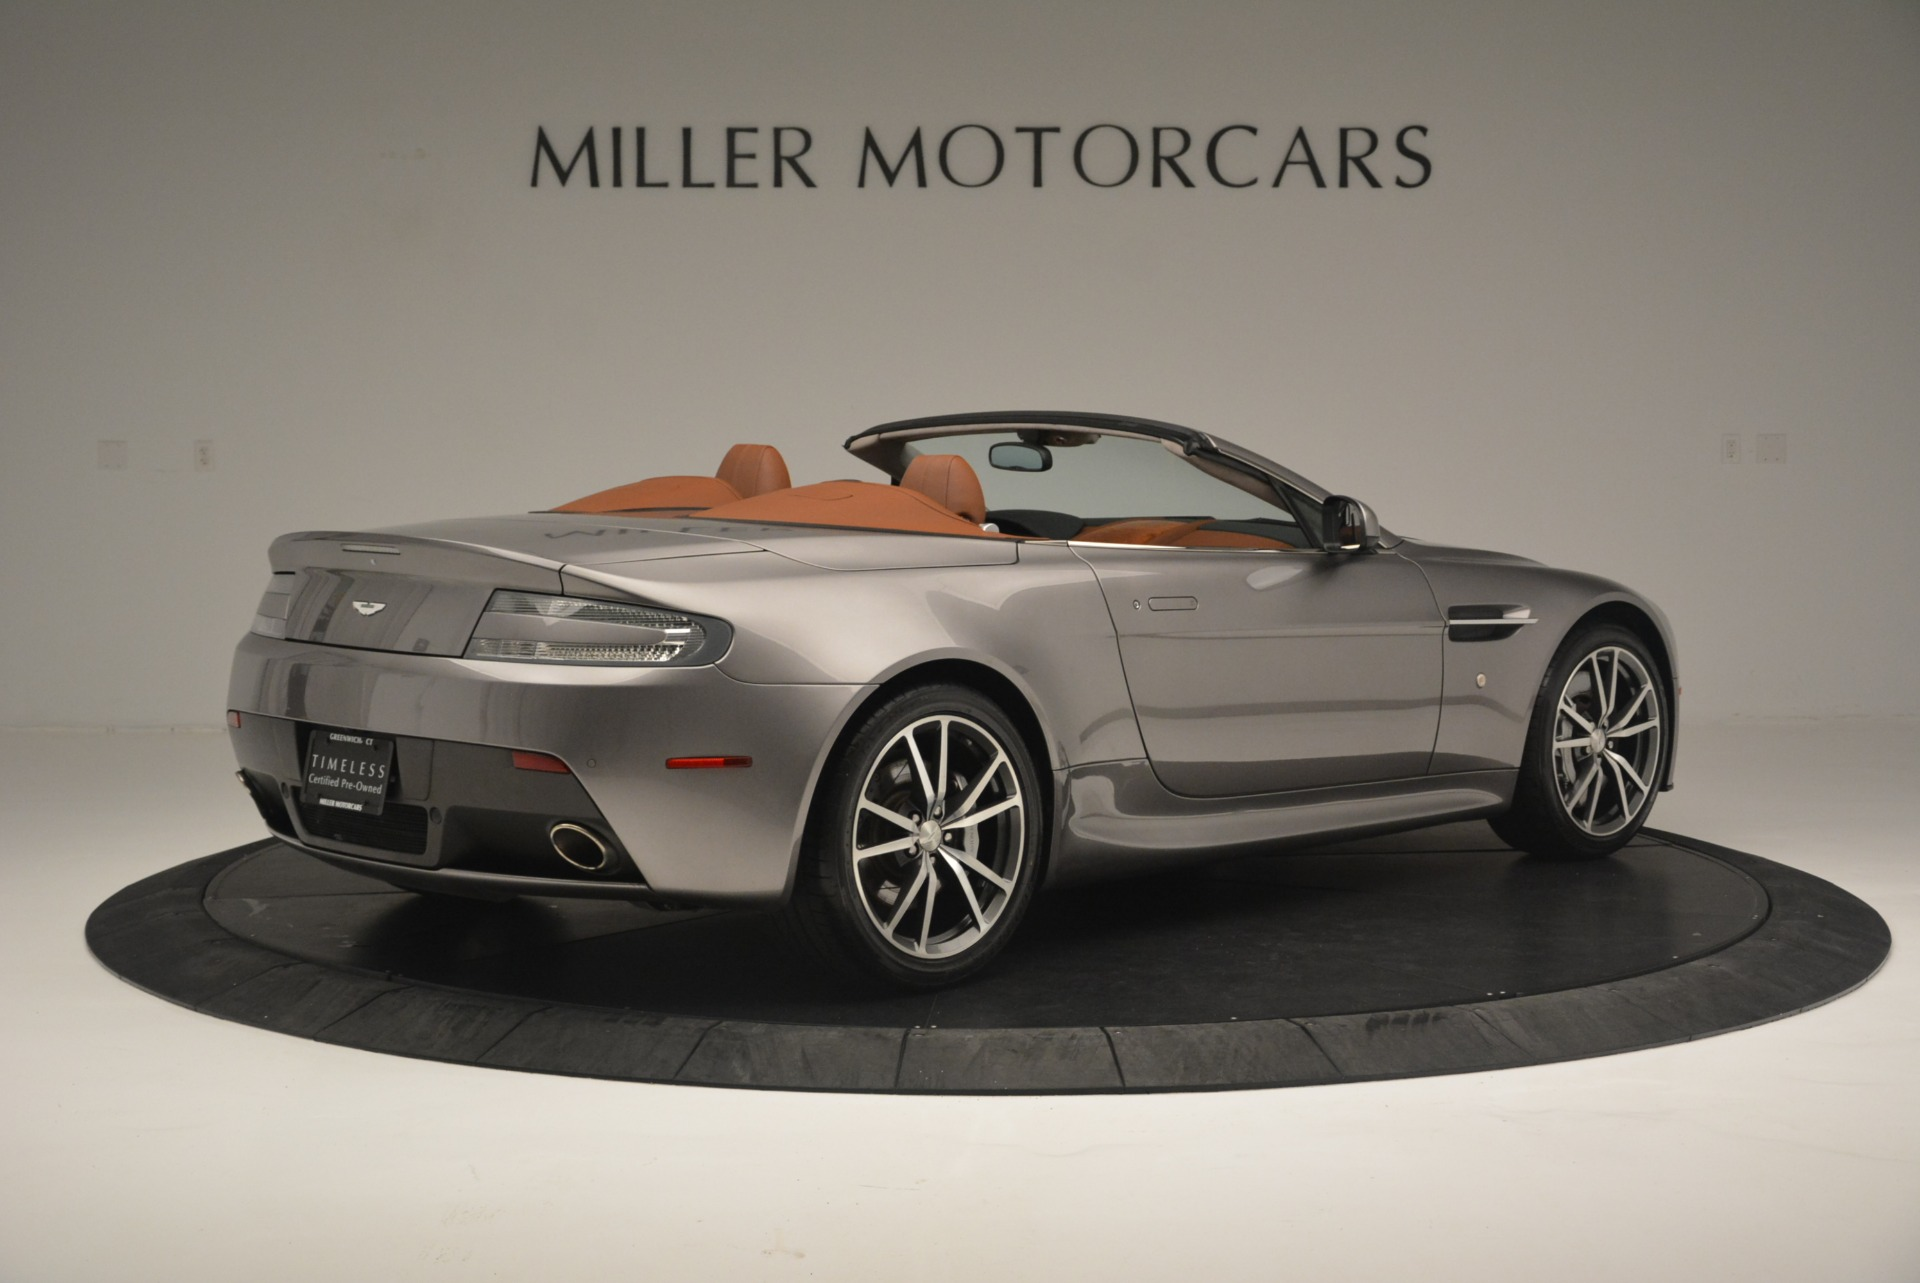 Used 2015 Aston Martin V8 Vantage Roadster For Sale In Greenwich, CT 2463_p8